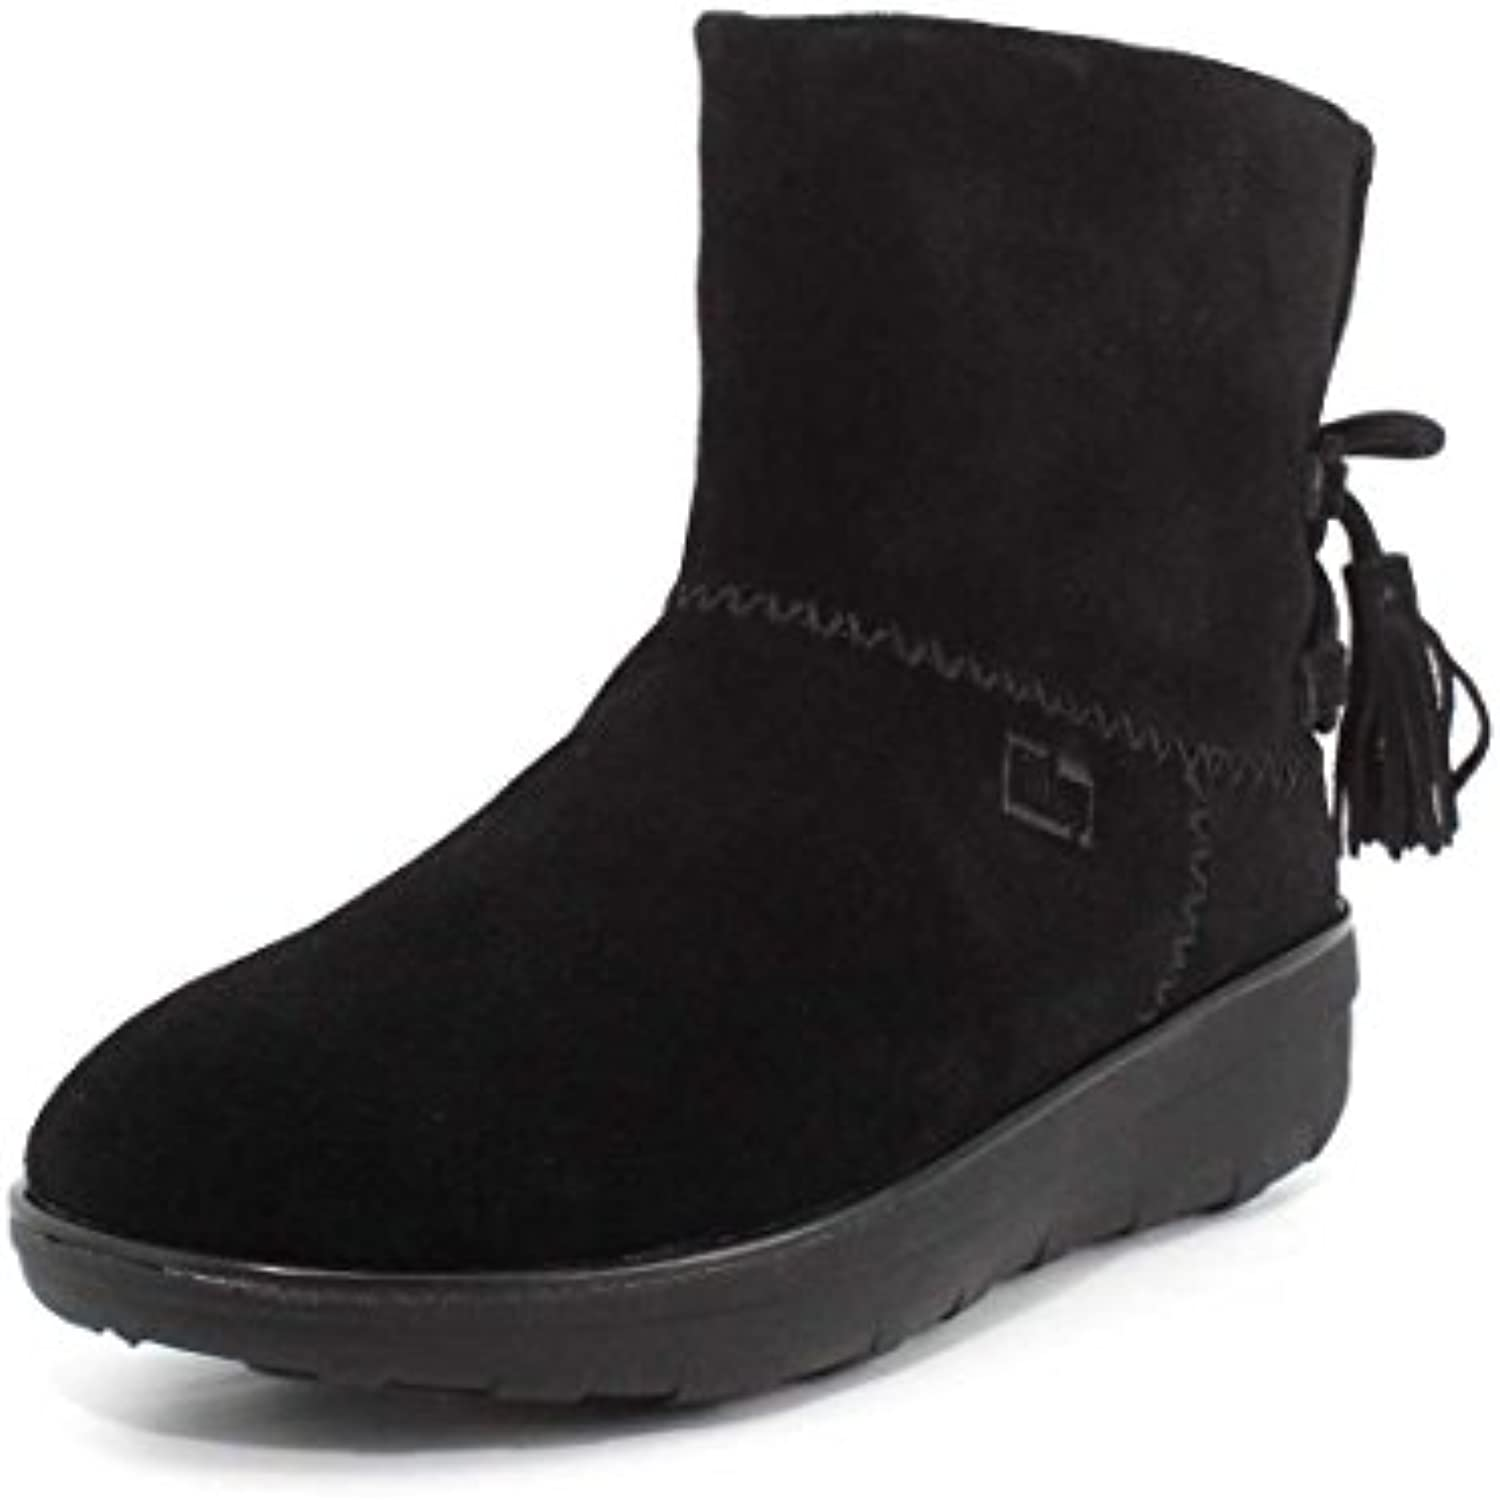 Fitflop Mukluk Shorty II Boots with T - Bota de Mujer, Color Negro, Talla 38